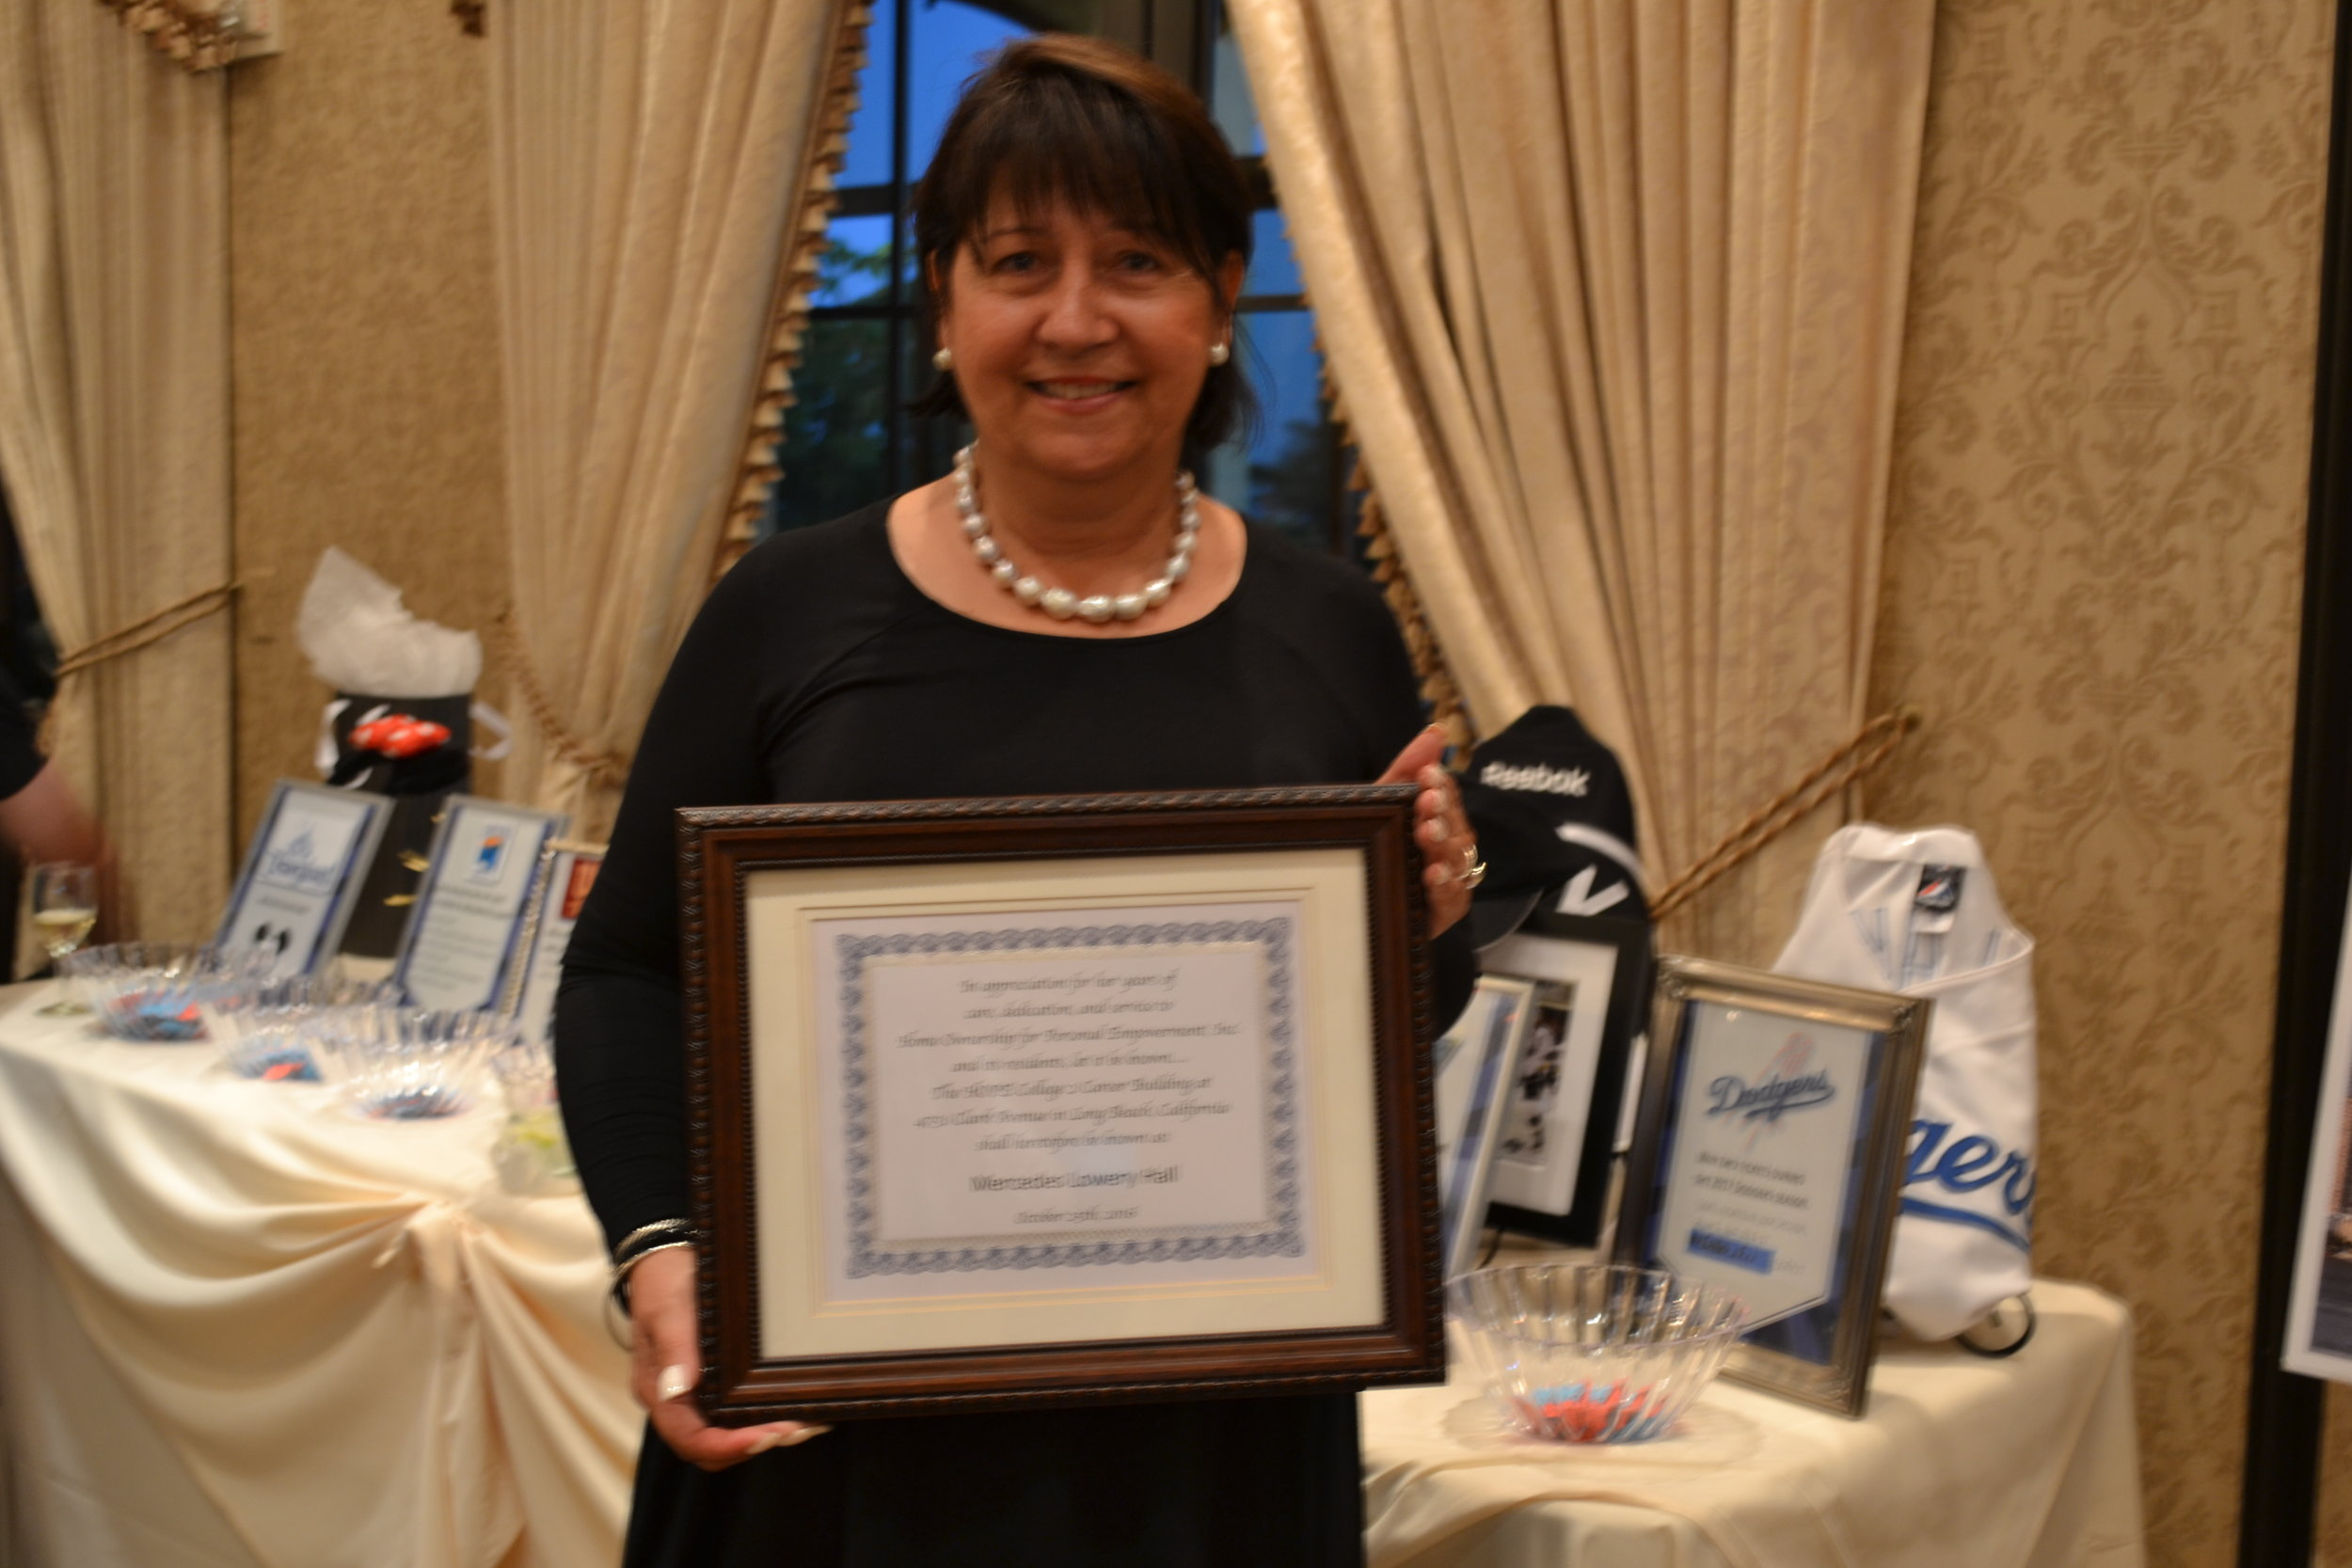 Mercedes Lowery honored at event.